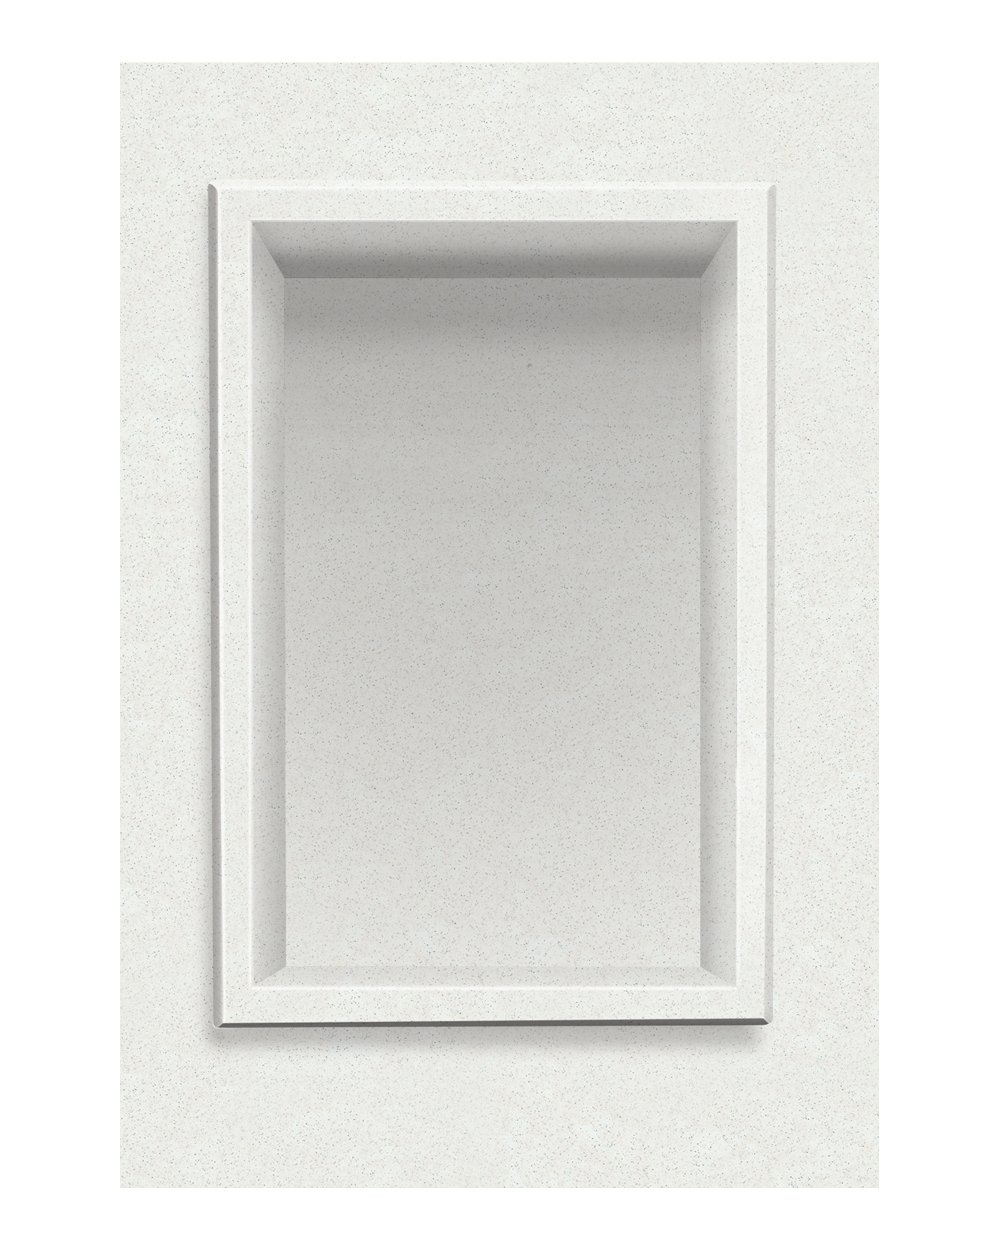 Transolid ACCESS0001-A8 Decor 7-1/2 x 11-Inch Recessed Shampoo Caddy, Matrix White by Transolid